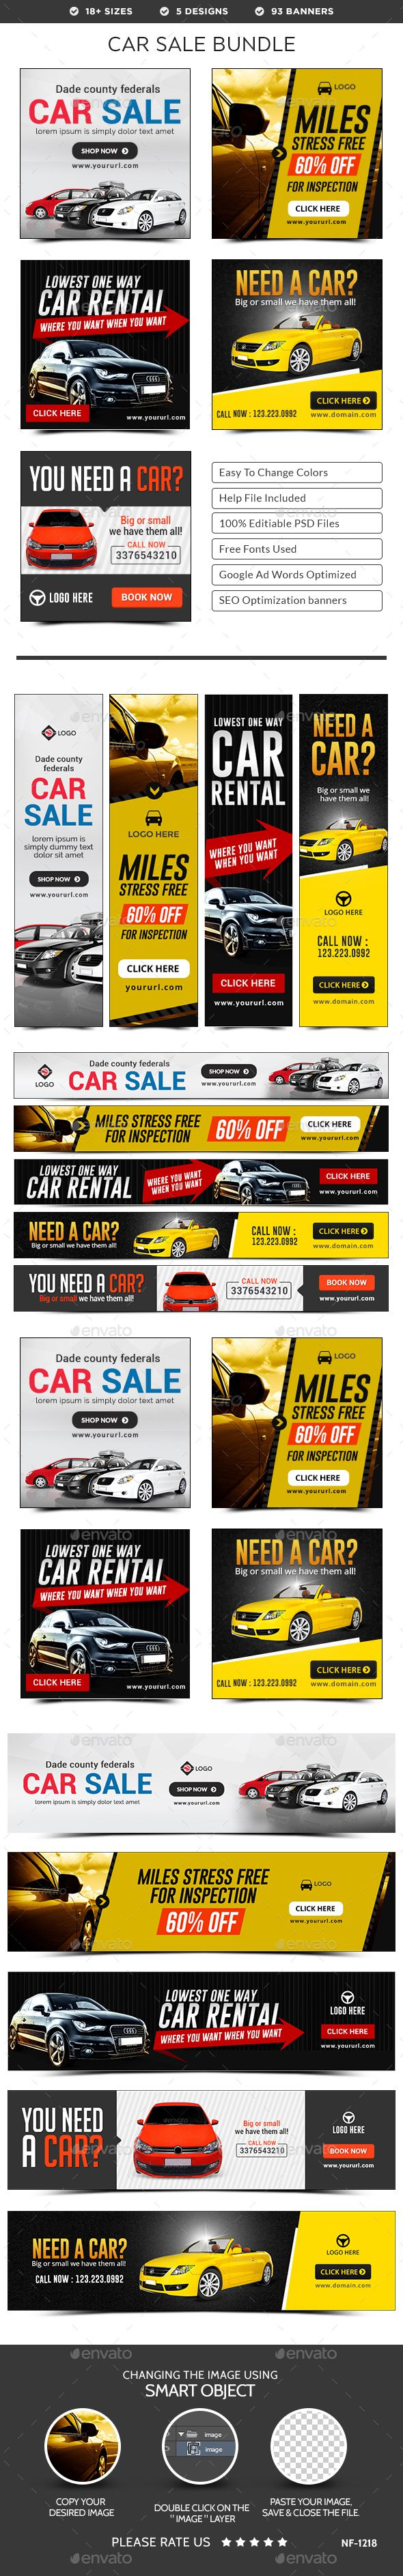 Car Sale Banners Bundle  5 Sets  93 Banners — Photoshop PSD #business #discounts • Available here → https://graphicriver.net/item/car-sale-banners-bundle-5-sets-93-banners/15721550?ref=pxcr